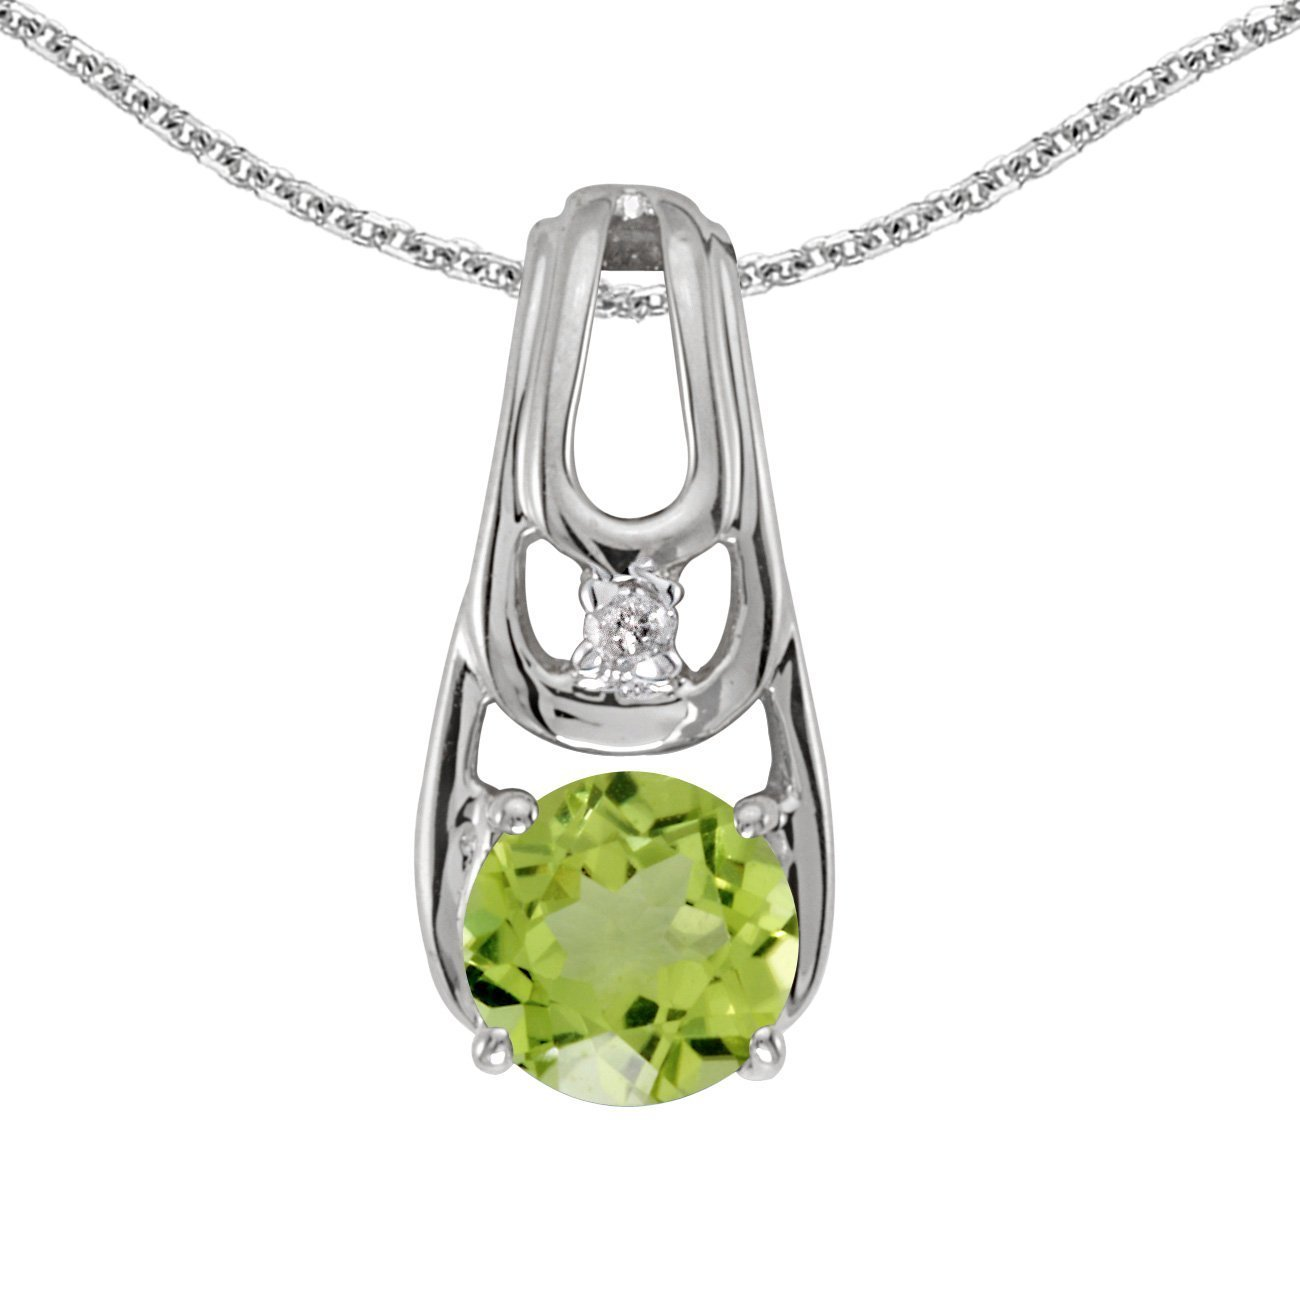 1//2 Cttw. FB Jewels Solid 14k White Gold Genuine Birthstone Round Gemstone And Diamond Pendant